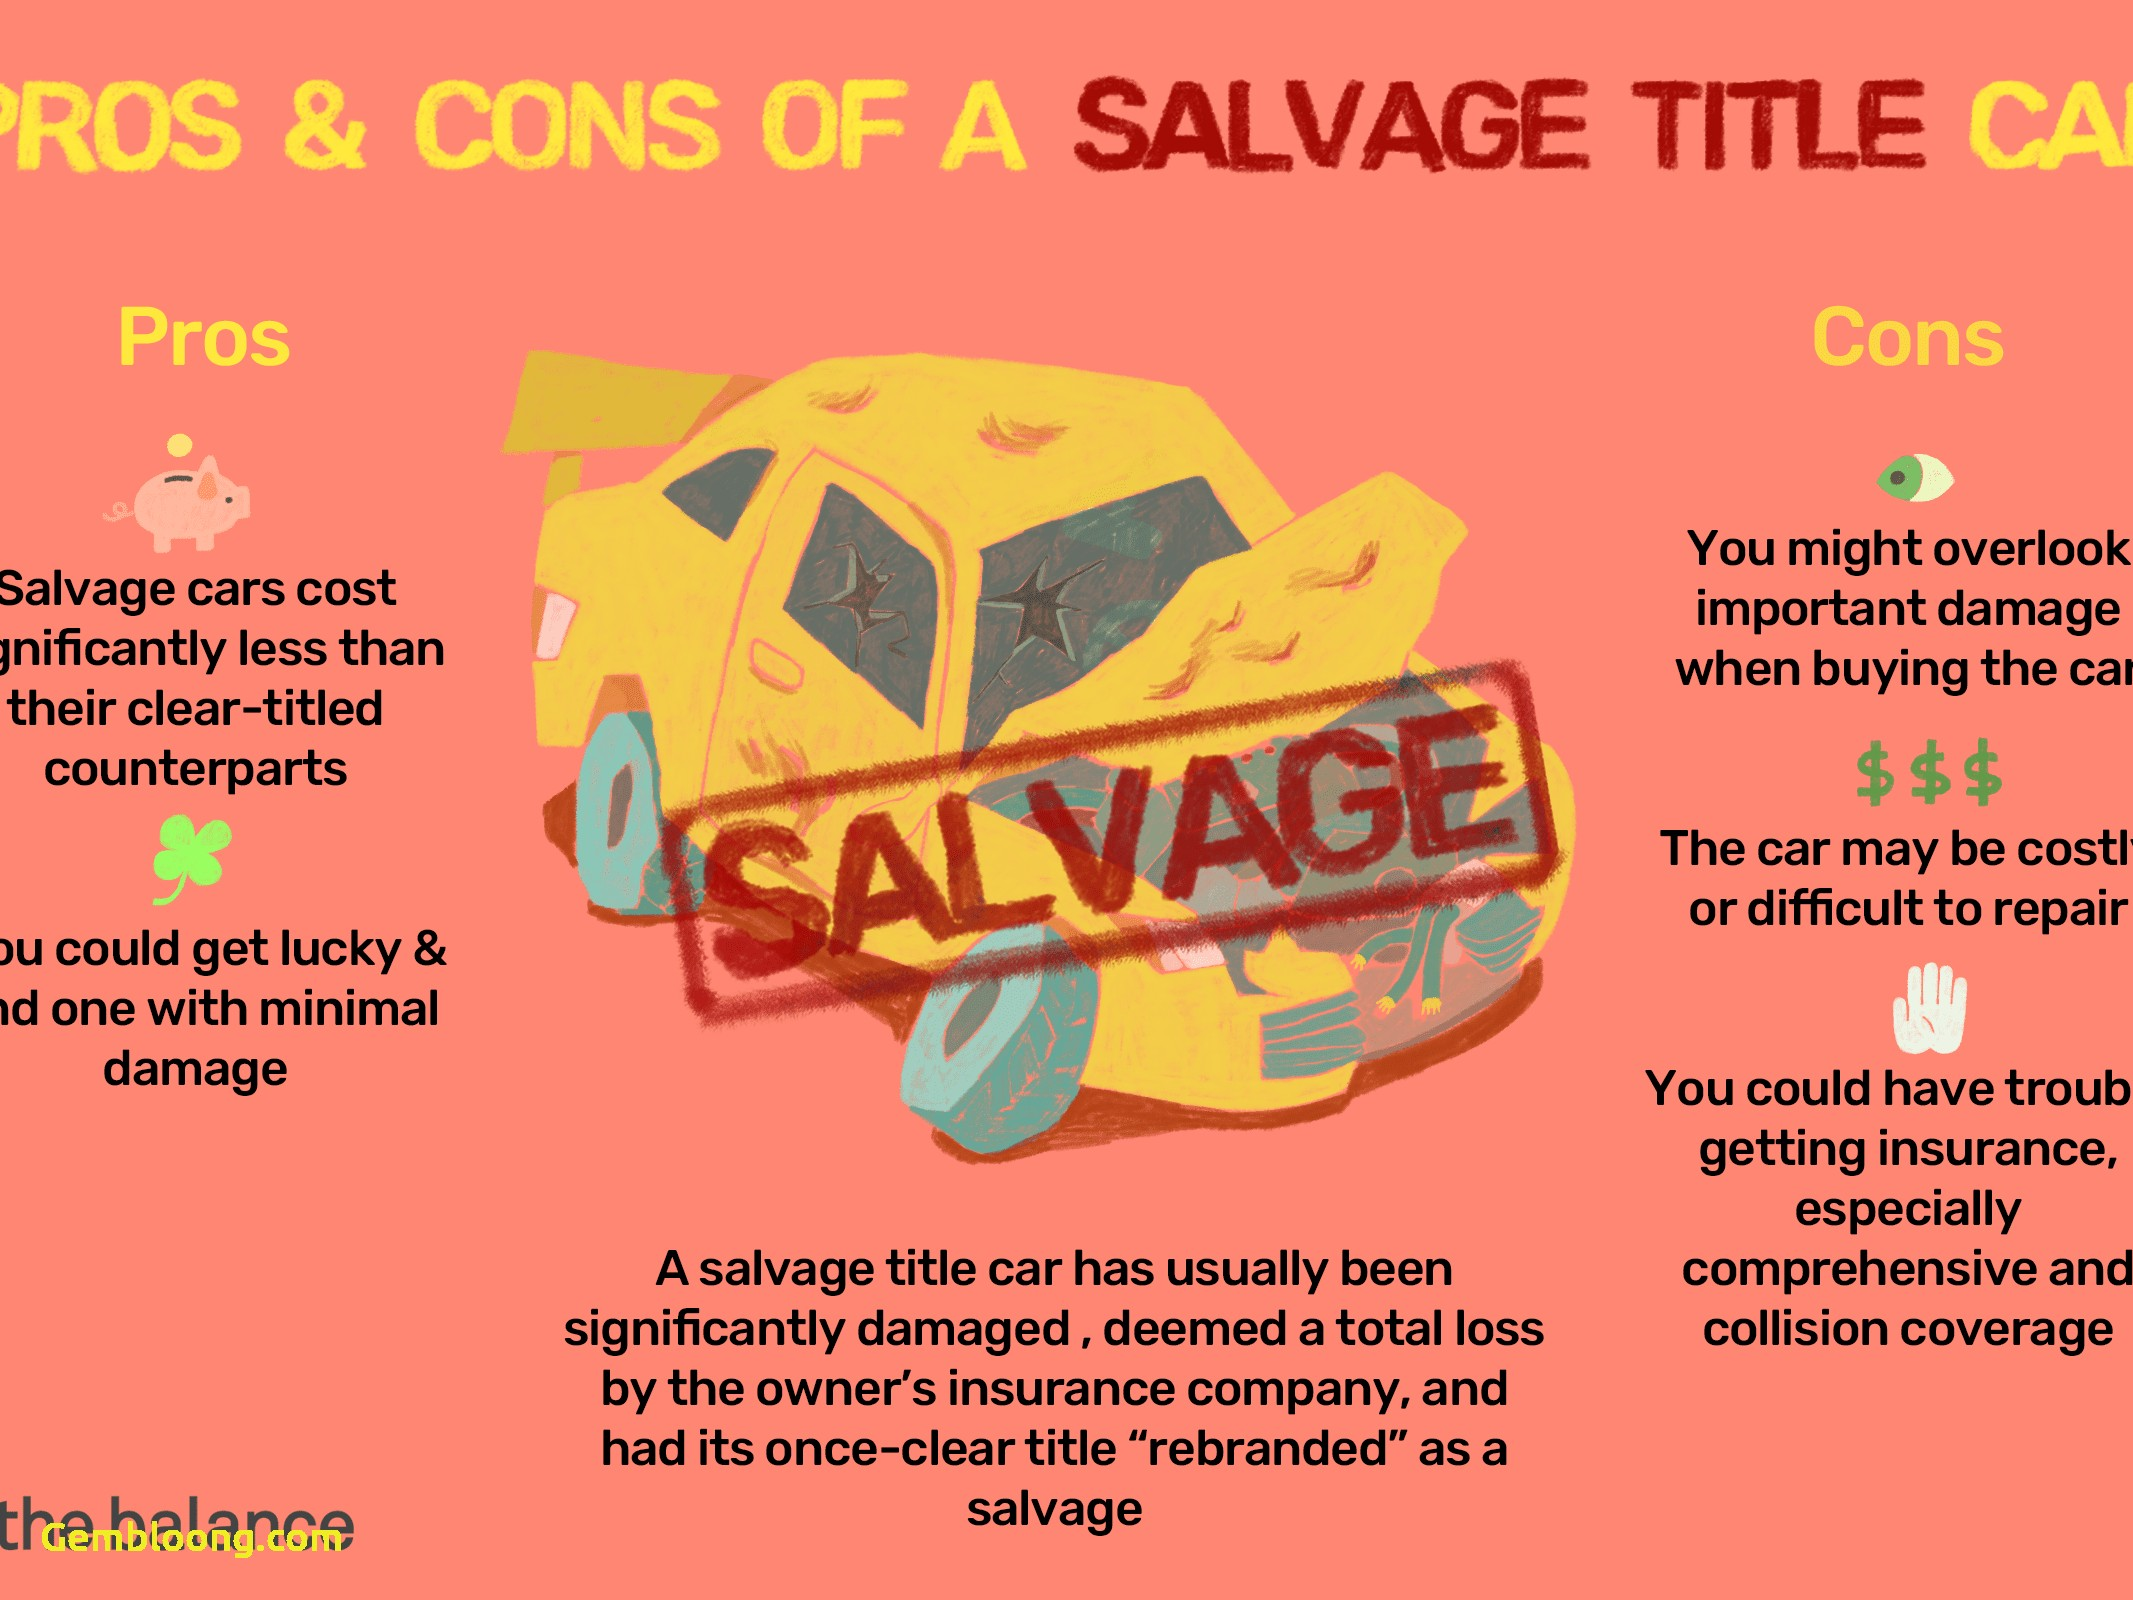 pros and cons of a salvage title car v4 JL a a67e20f f86